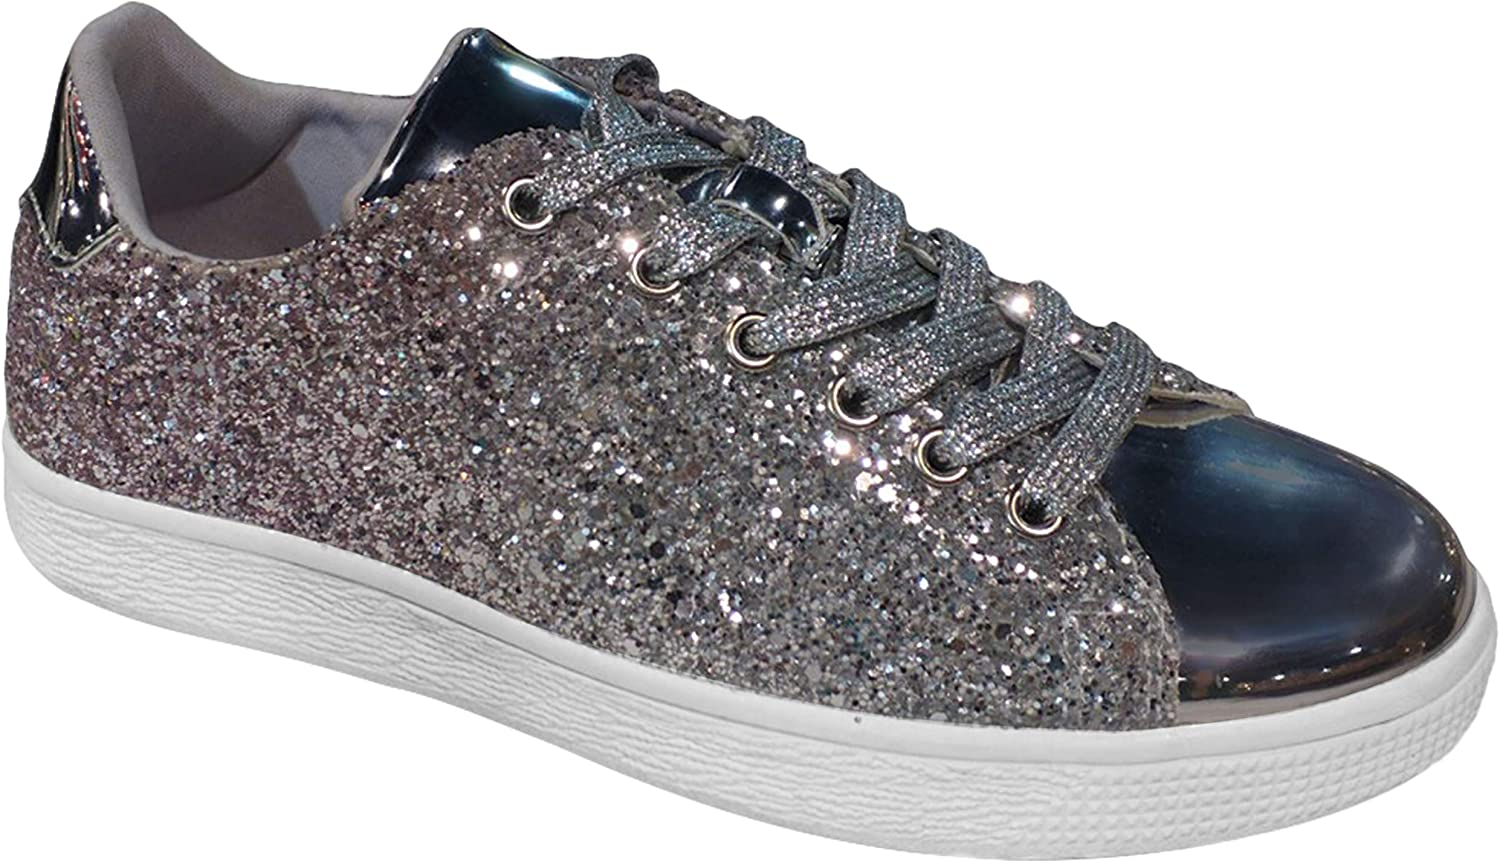 TravelNut Easter Special Sale New Metallic Laceup Fashion Sneaker for Women & Girls (Assorted colors)